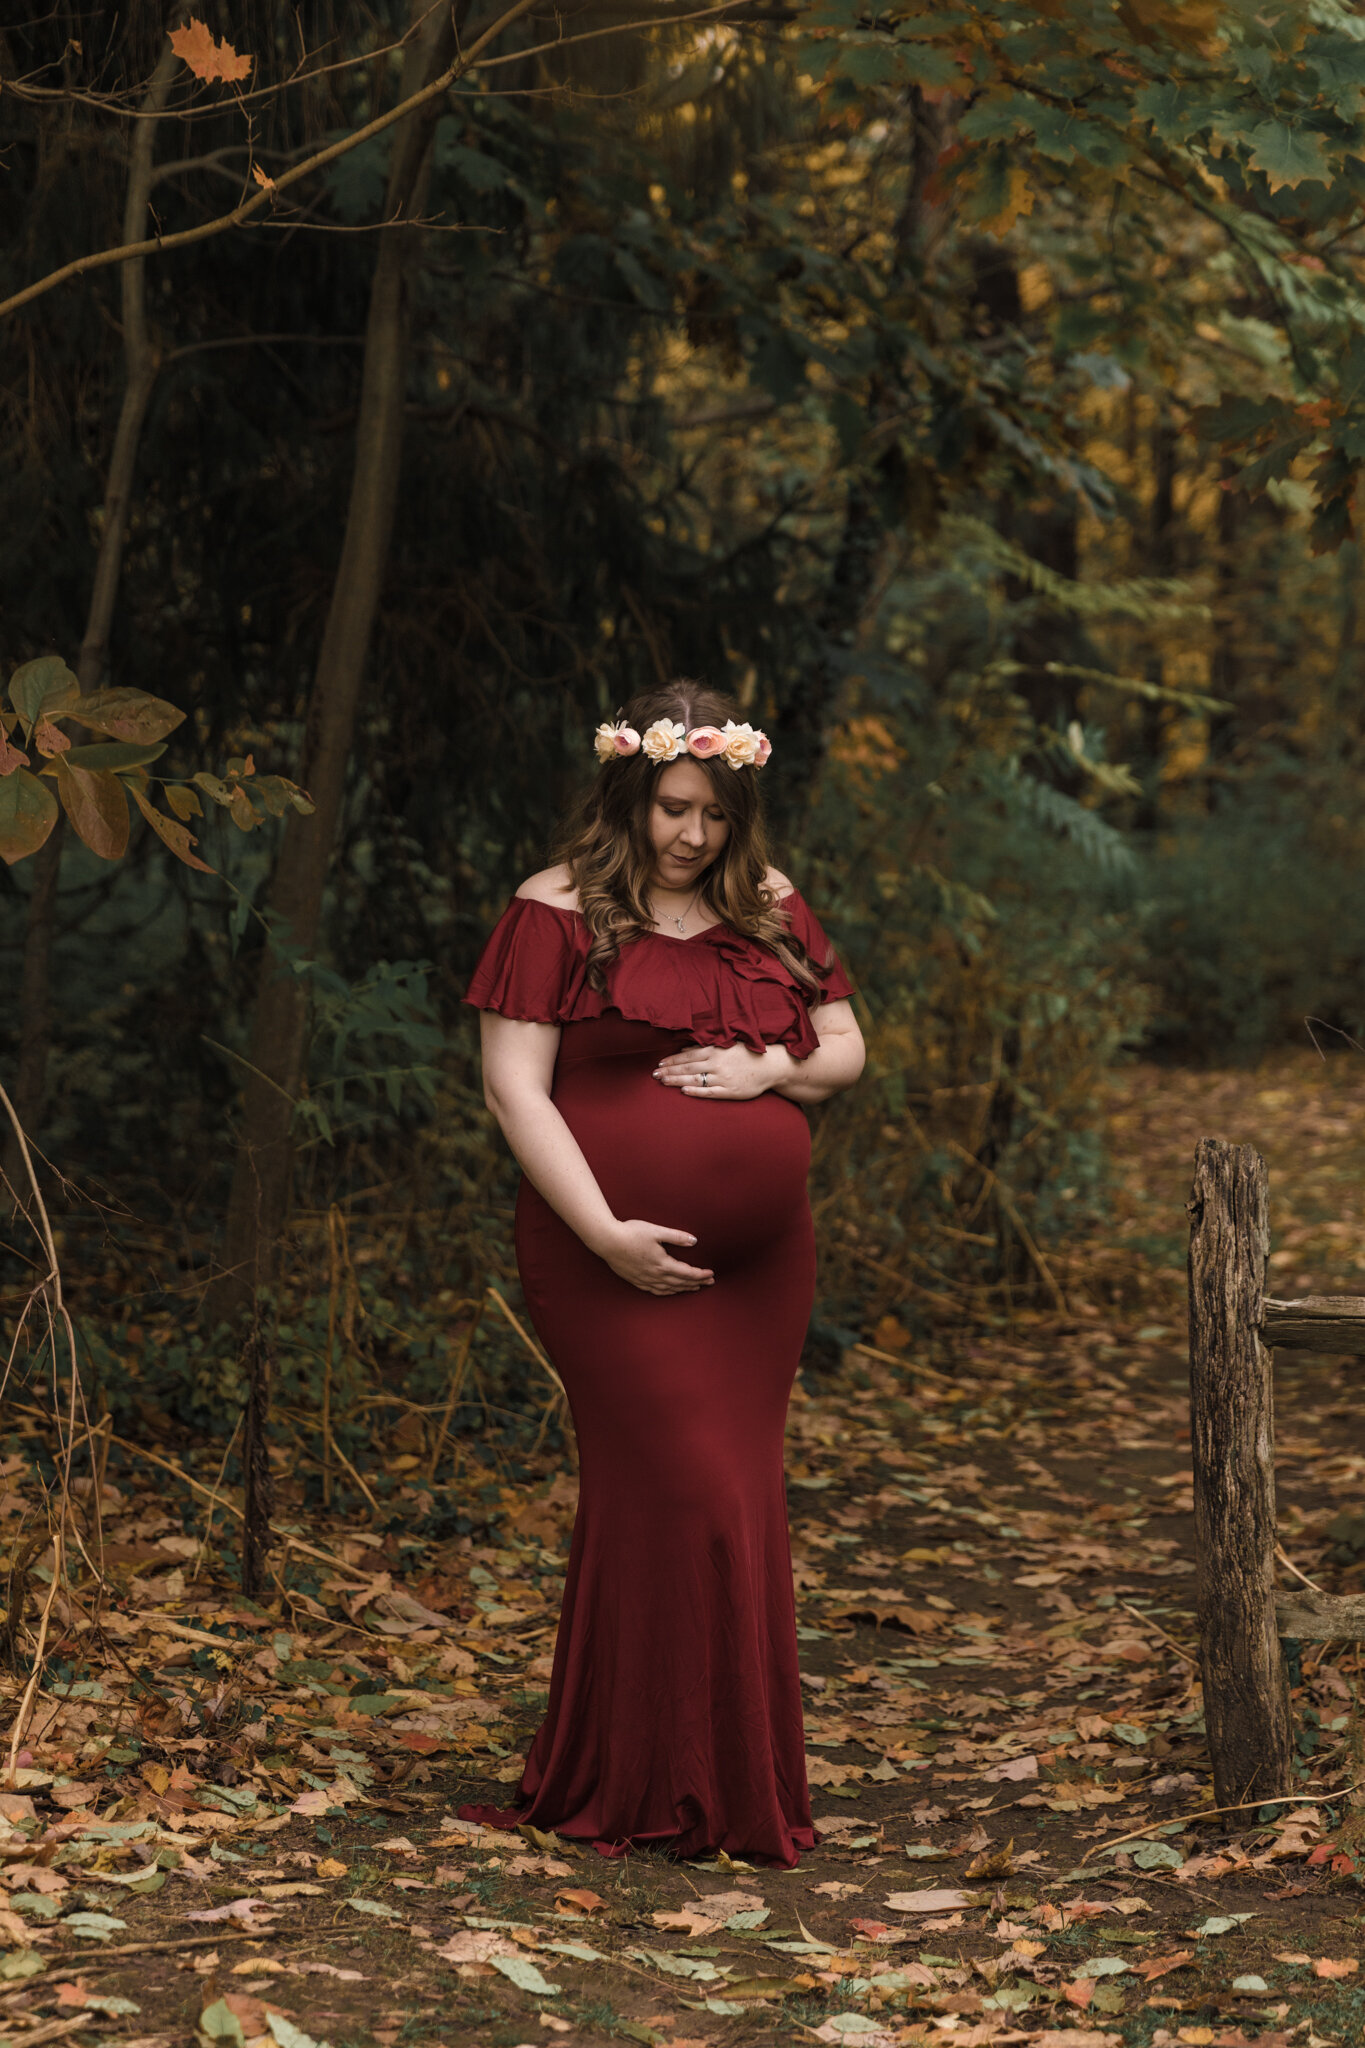 Professional_Maternity_Photography_Lifestyle_Maternity_Session_at_Mill_Creek_Metro_Parks_Rose_Garden_Youngstown_Ohio_by_Newborn_and_Maternity_Photographer_Christie_Leigh_Photo-2.JPG